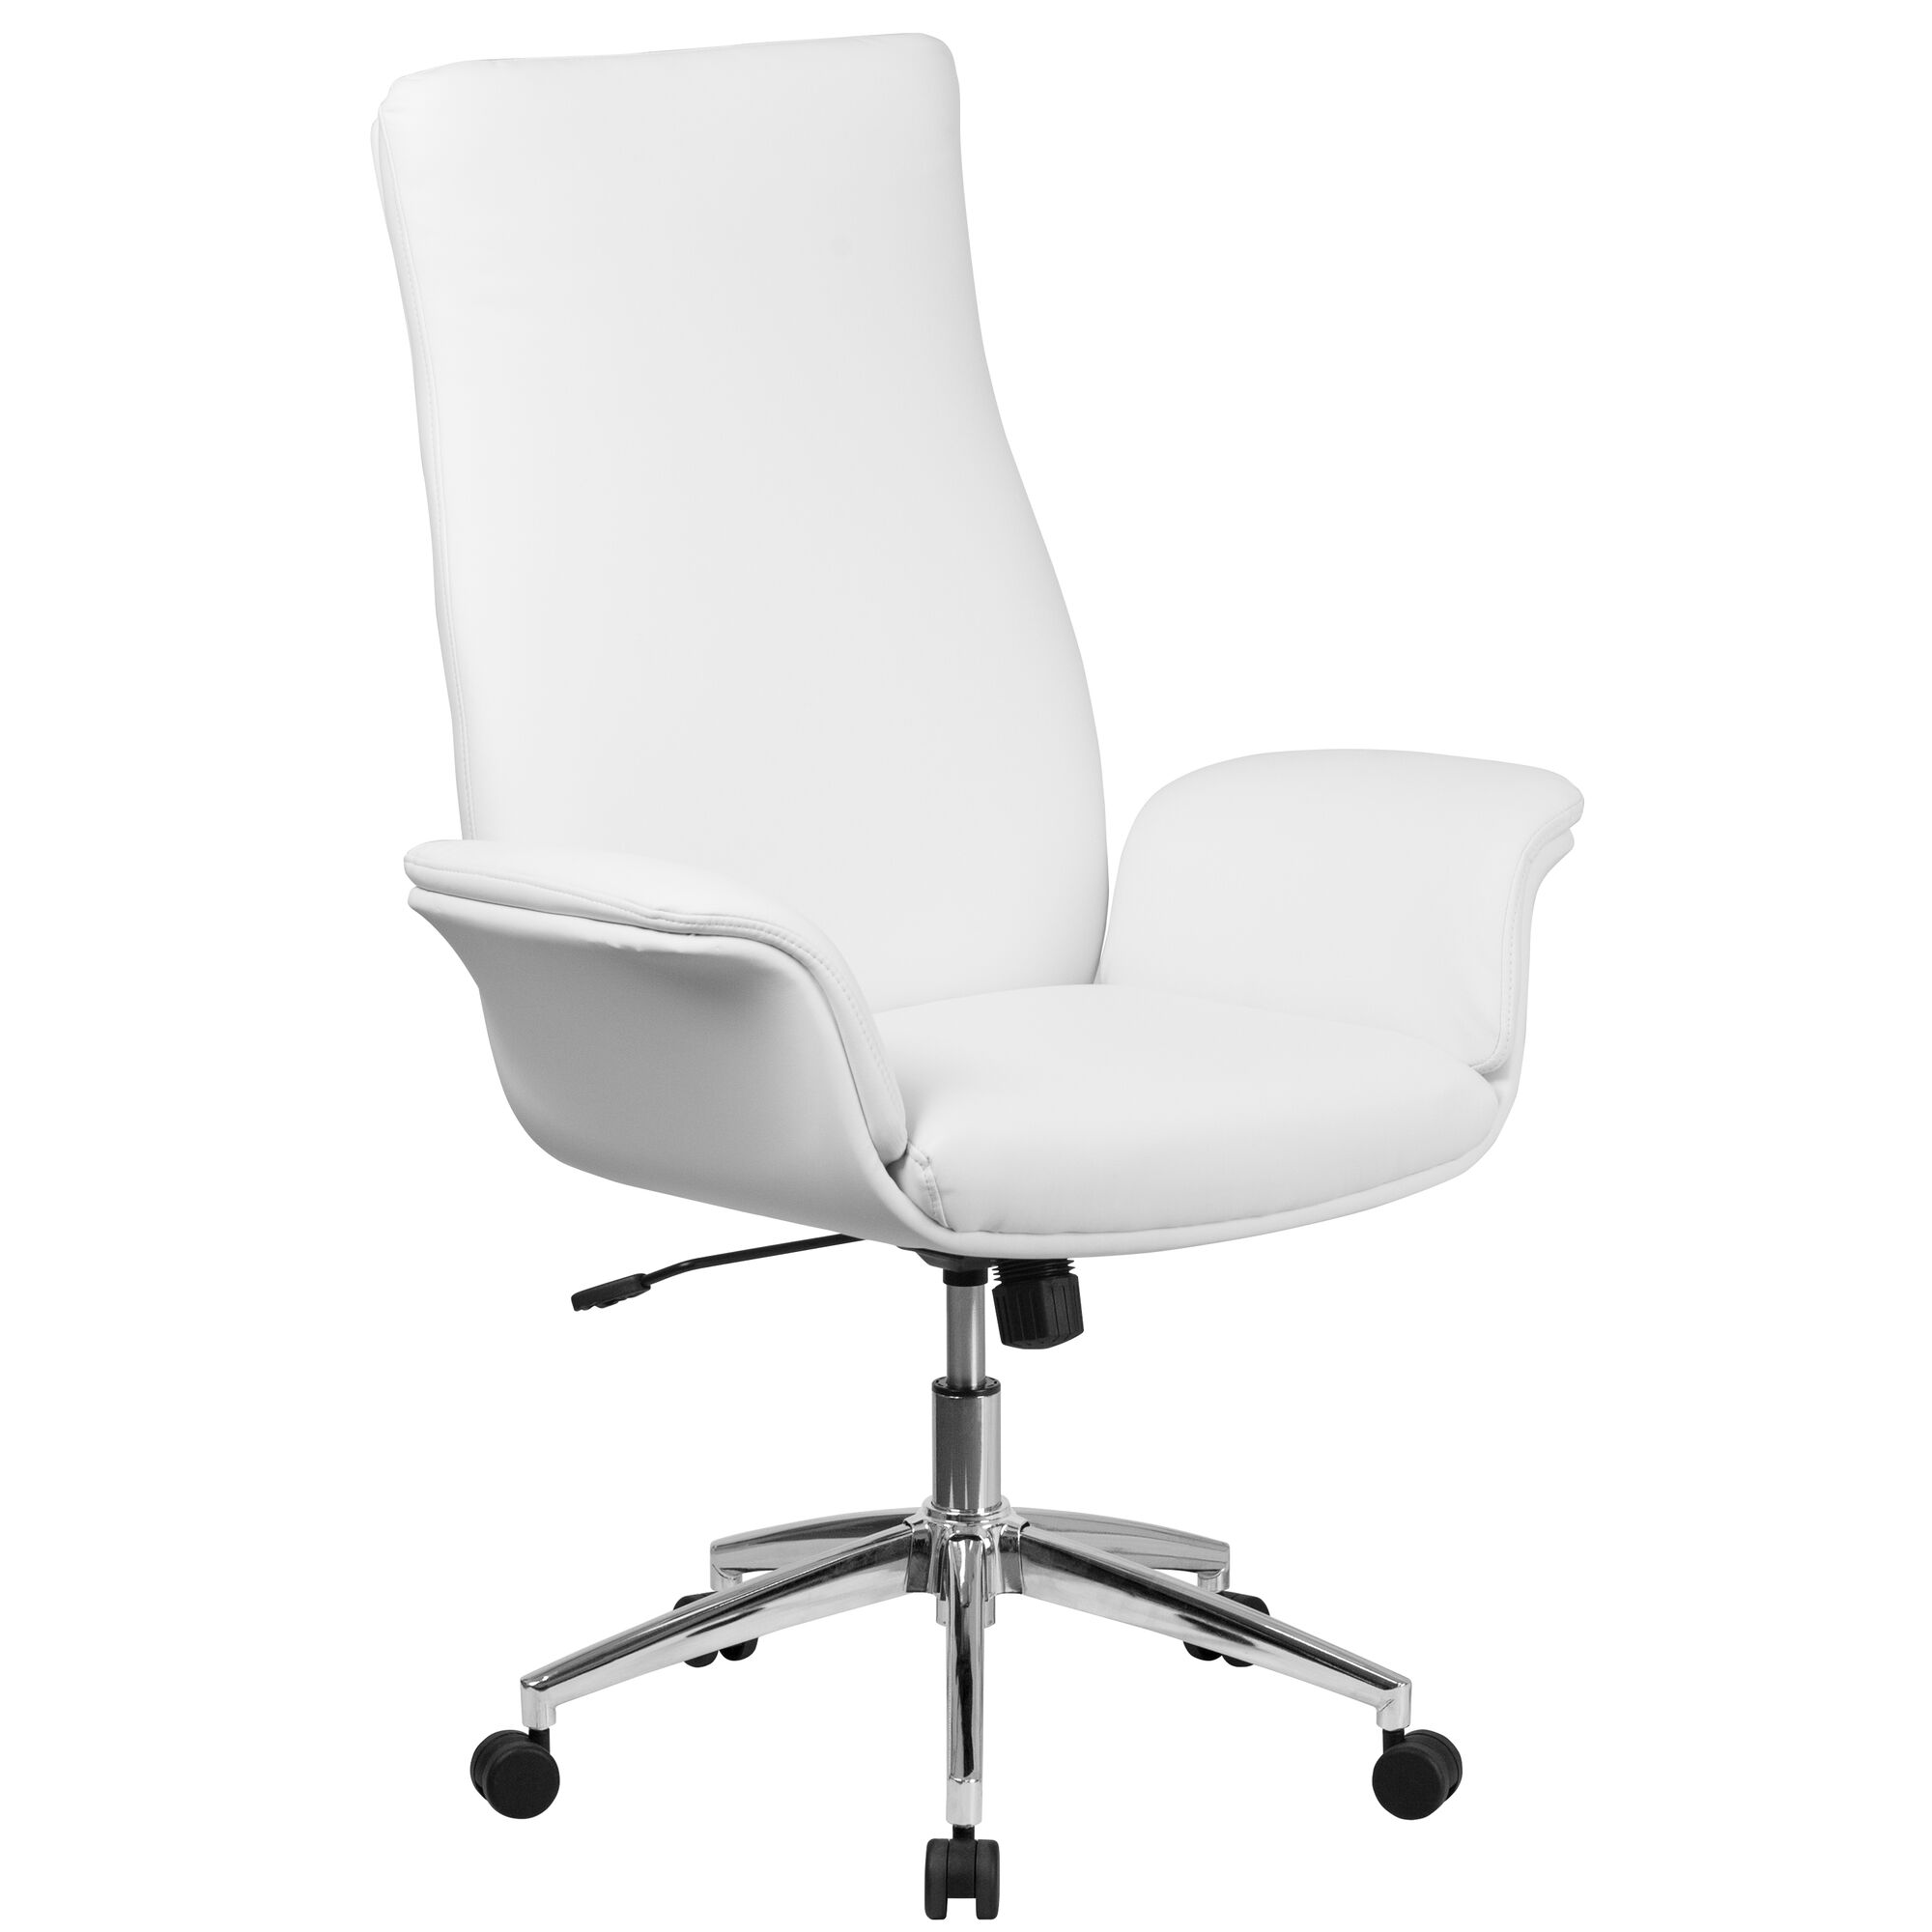 white leather armchairs sale white high back leather chair bt 88 wh gg bizchair com 21971 | FLASH FURNITURE BT 88 WH GG MAIN IMAGE